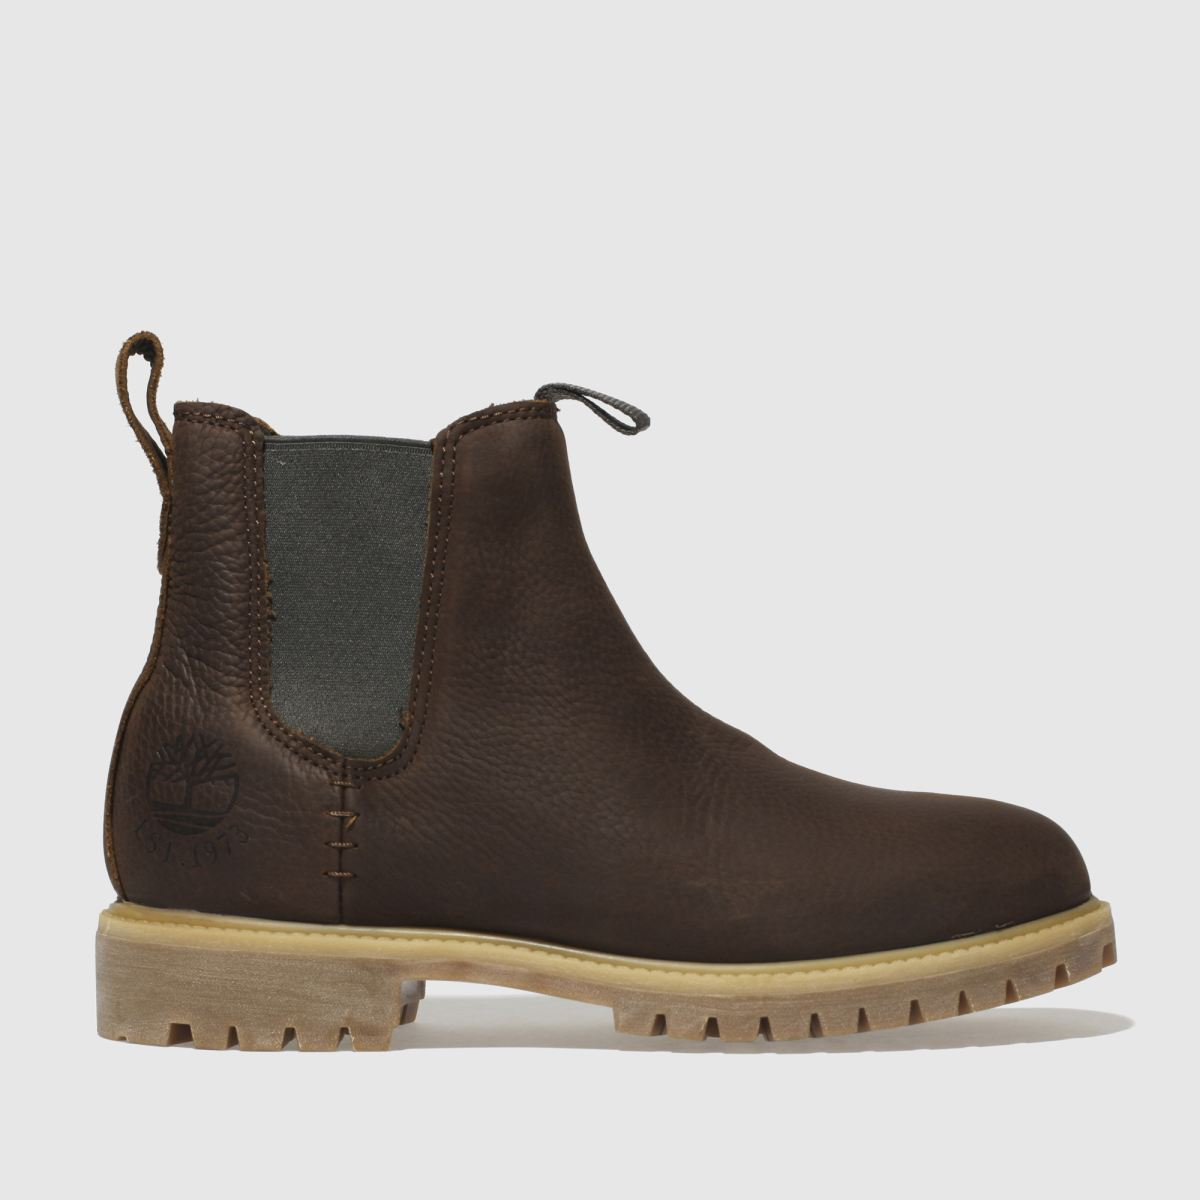 Timberland Brown Premium Chelsea Boots